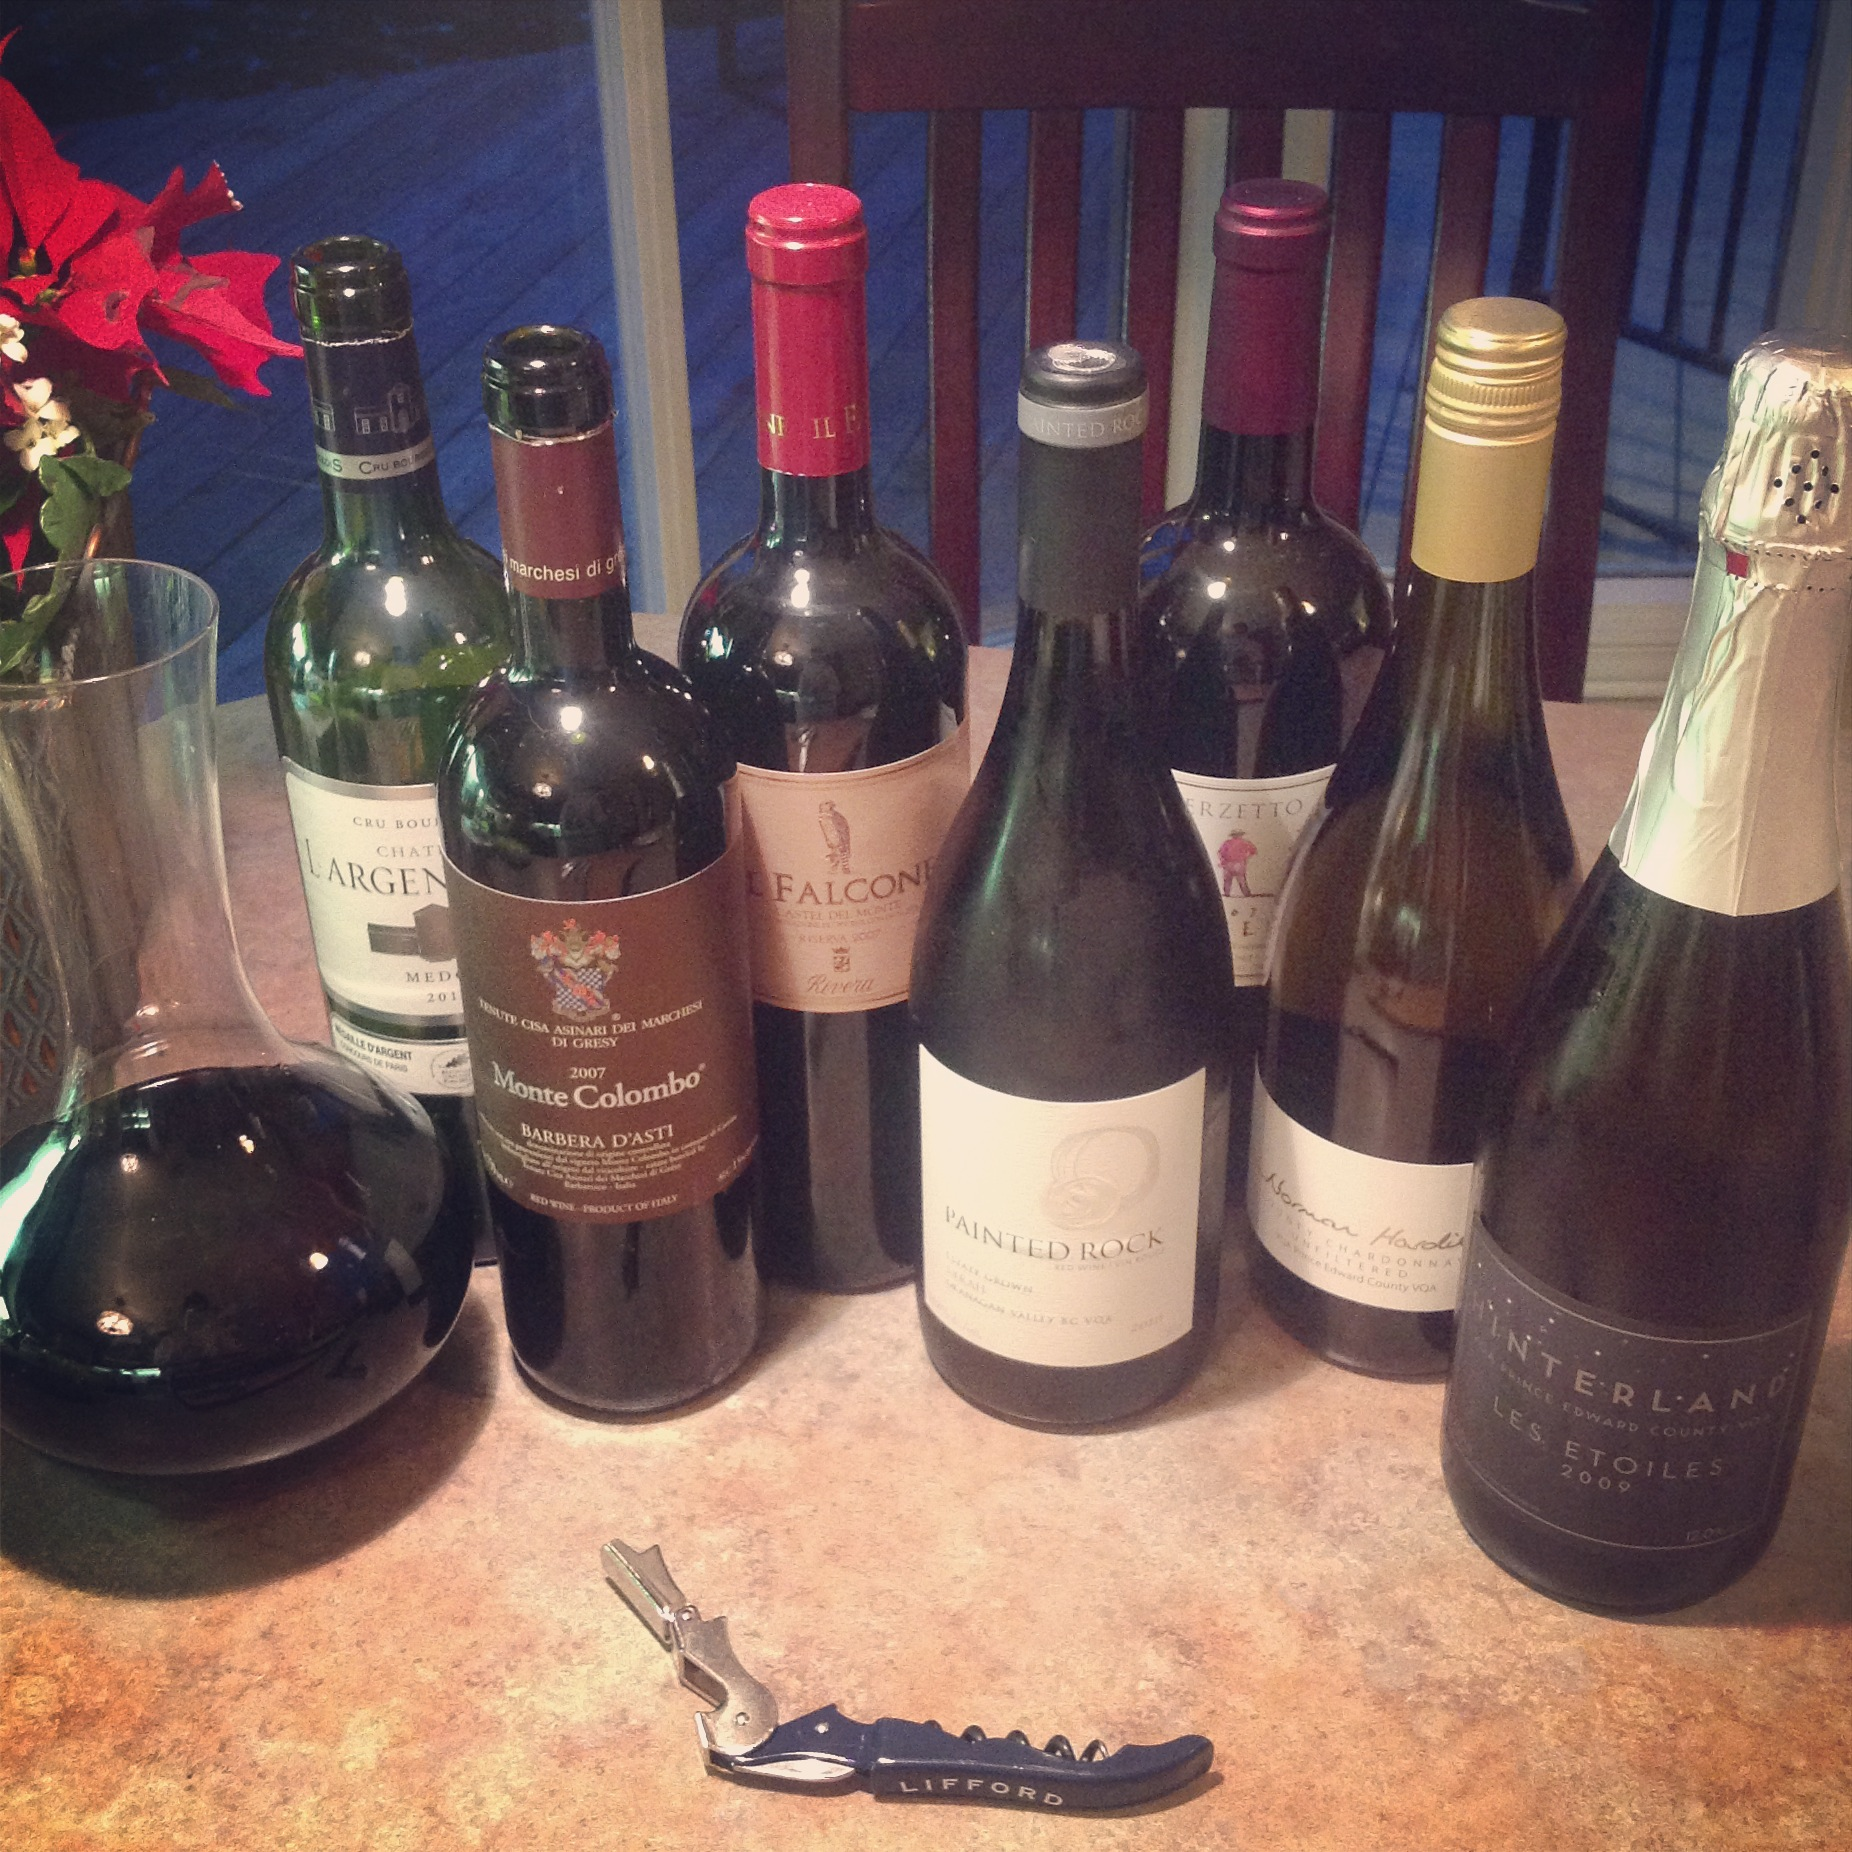 A humble collection of Christmas Eve wine.